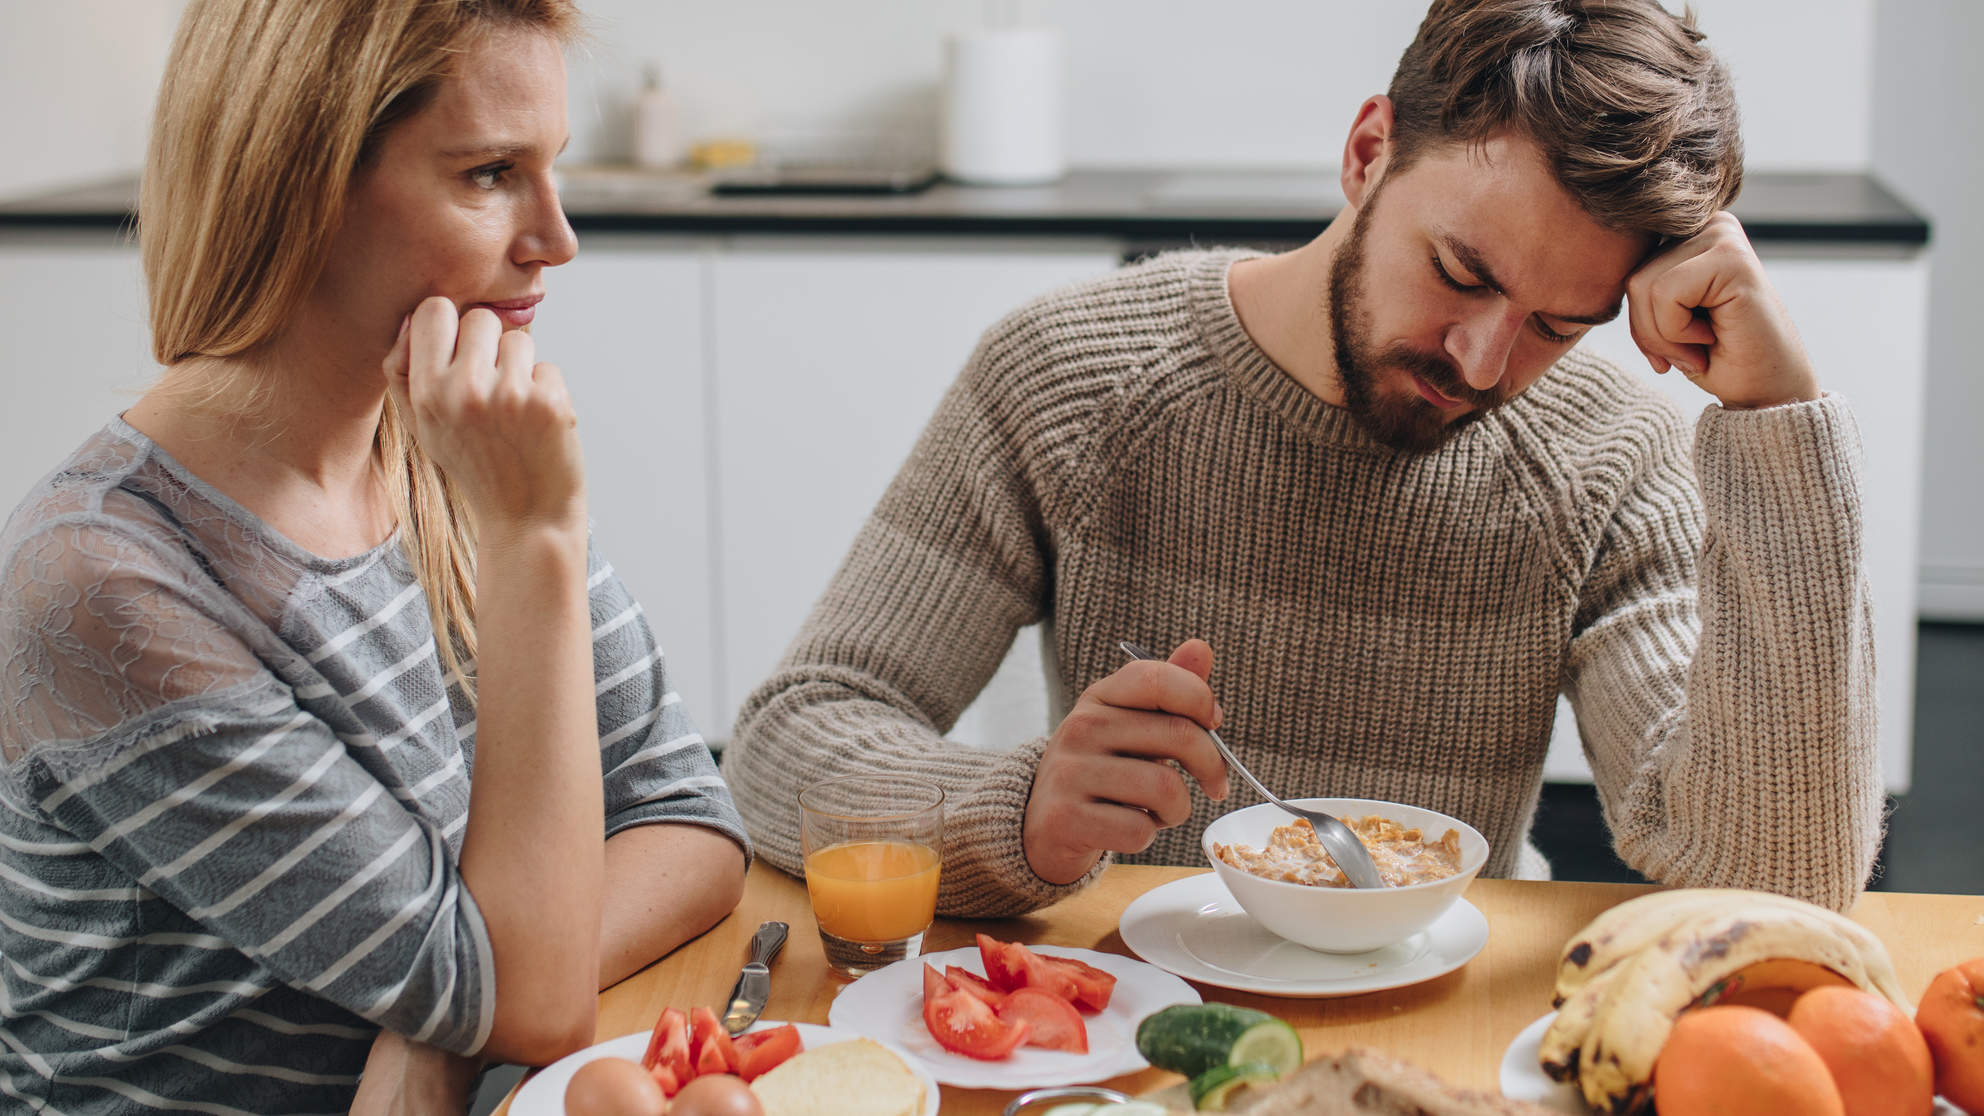 How My Relationship With Food Changed After I Moved in With My Boyfriend